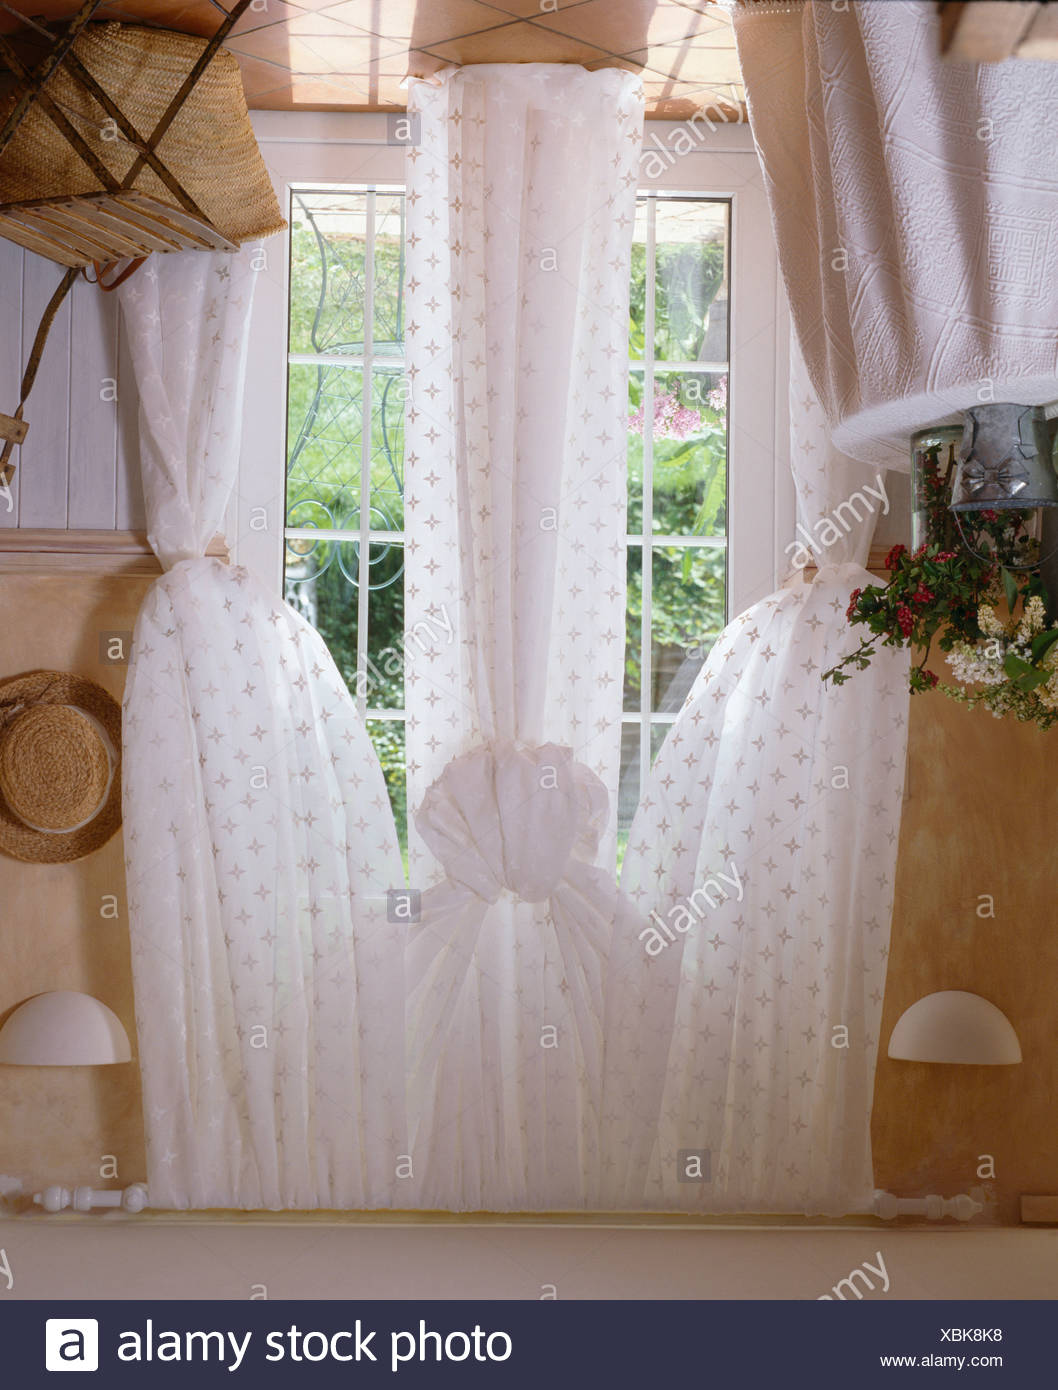 Spotted White Voile Drapes On French Windows In Country Dining Room